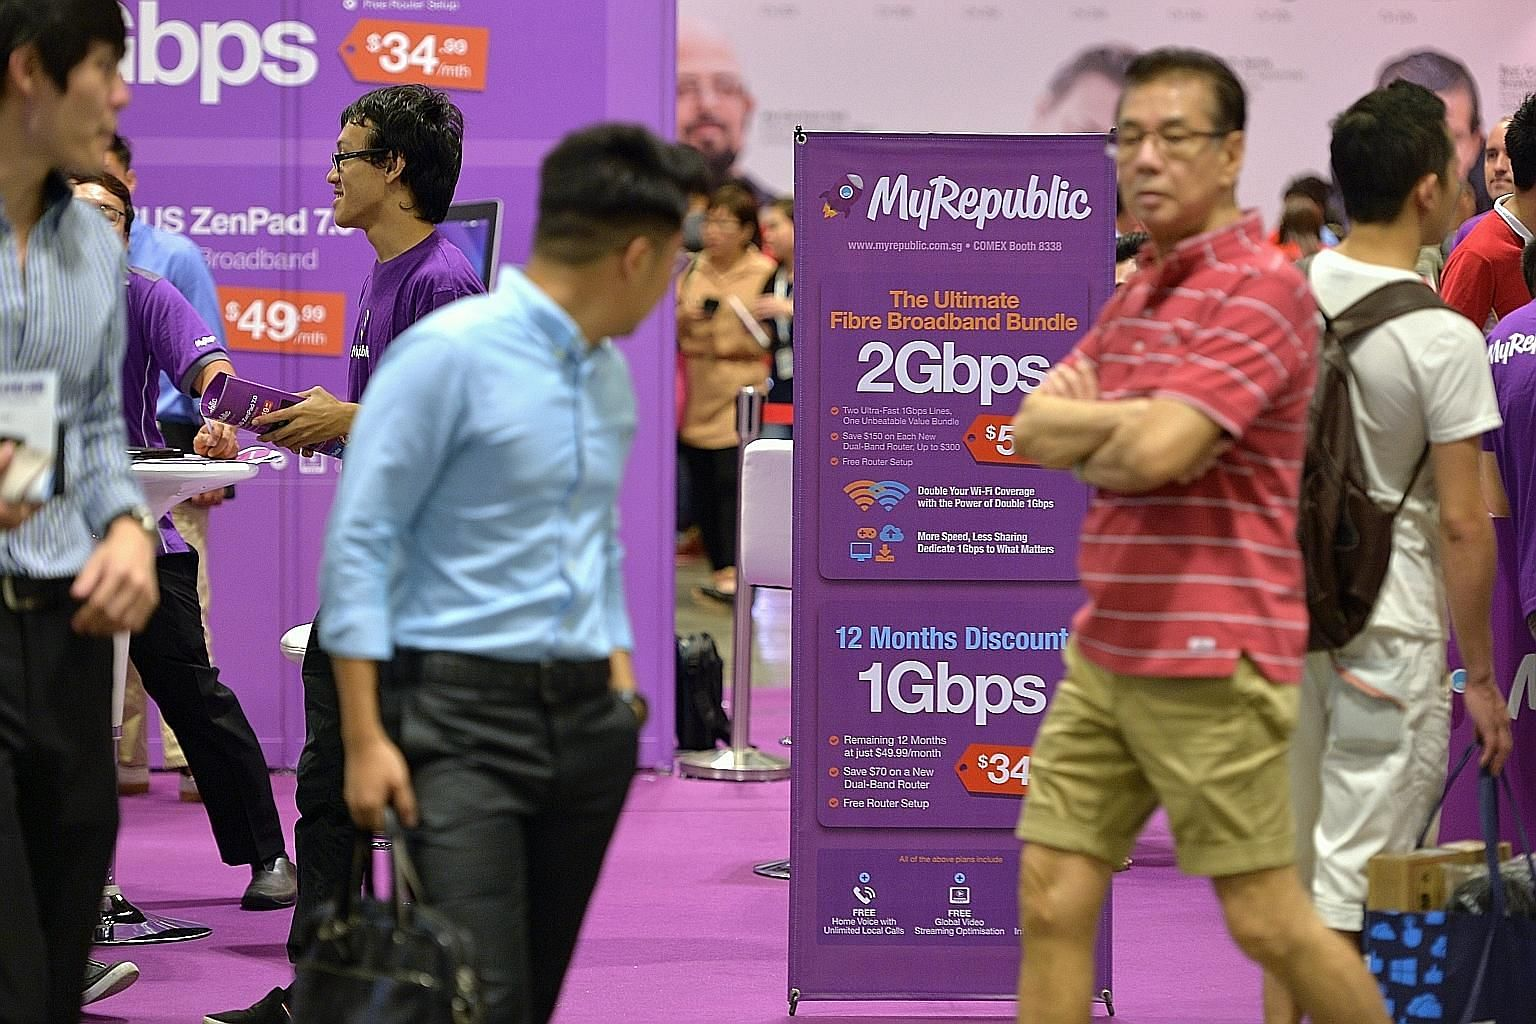 MyRepublic's Comex booth at the Suntec Singapore Convention and Exhibition Centre saw a steady stream of customers yesterday.